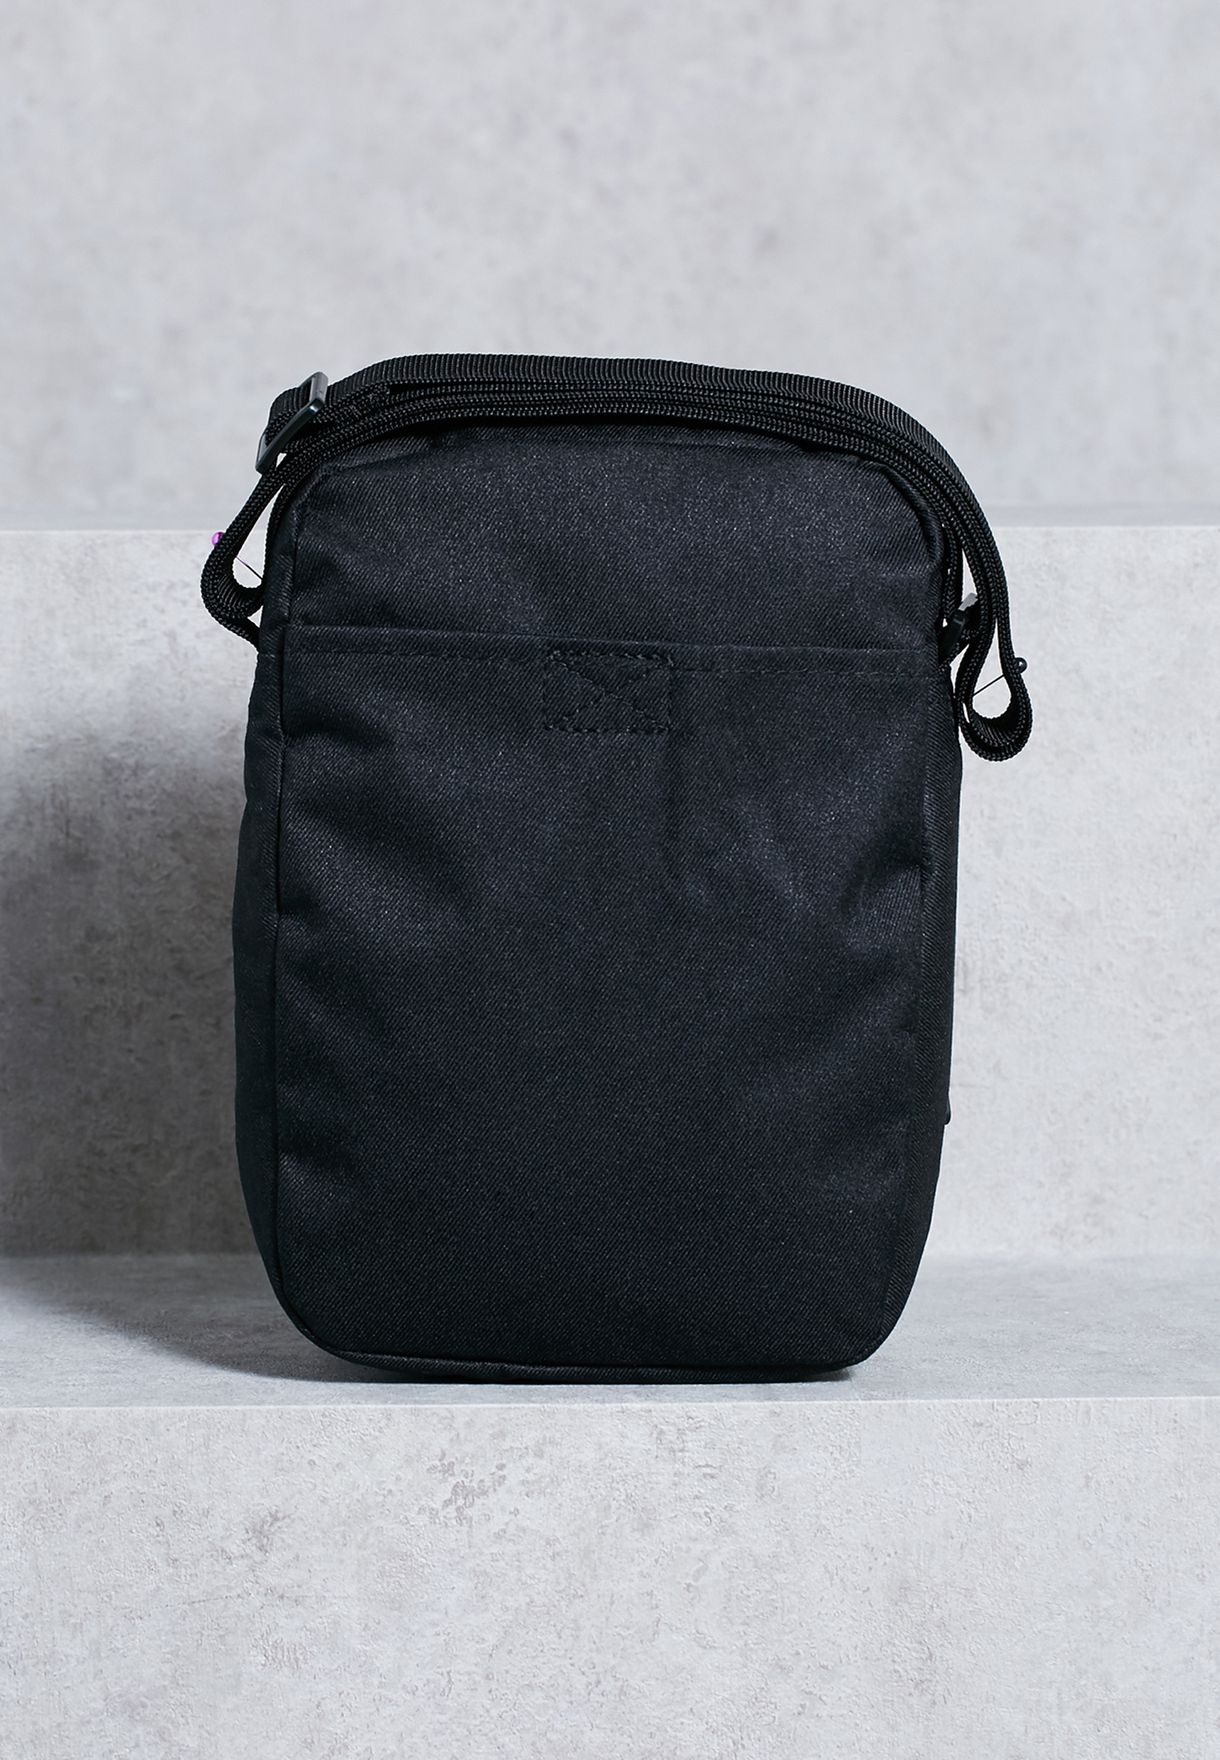 low priced d2313 a2a82 Small Core Items 3.0 Messenger